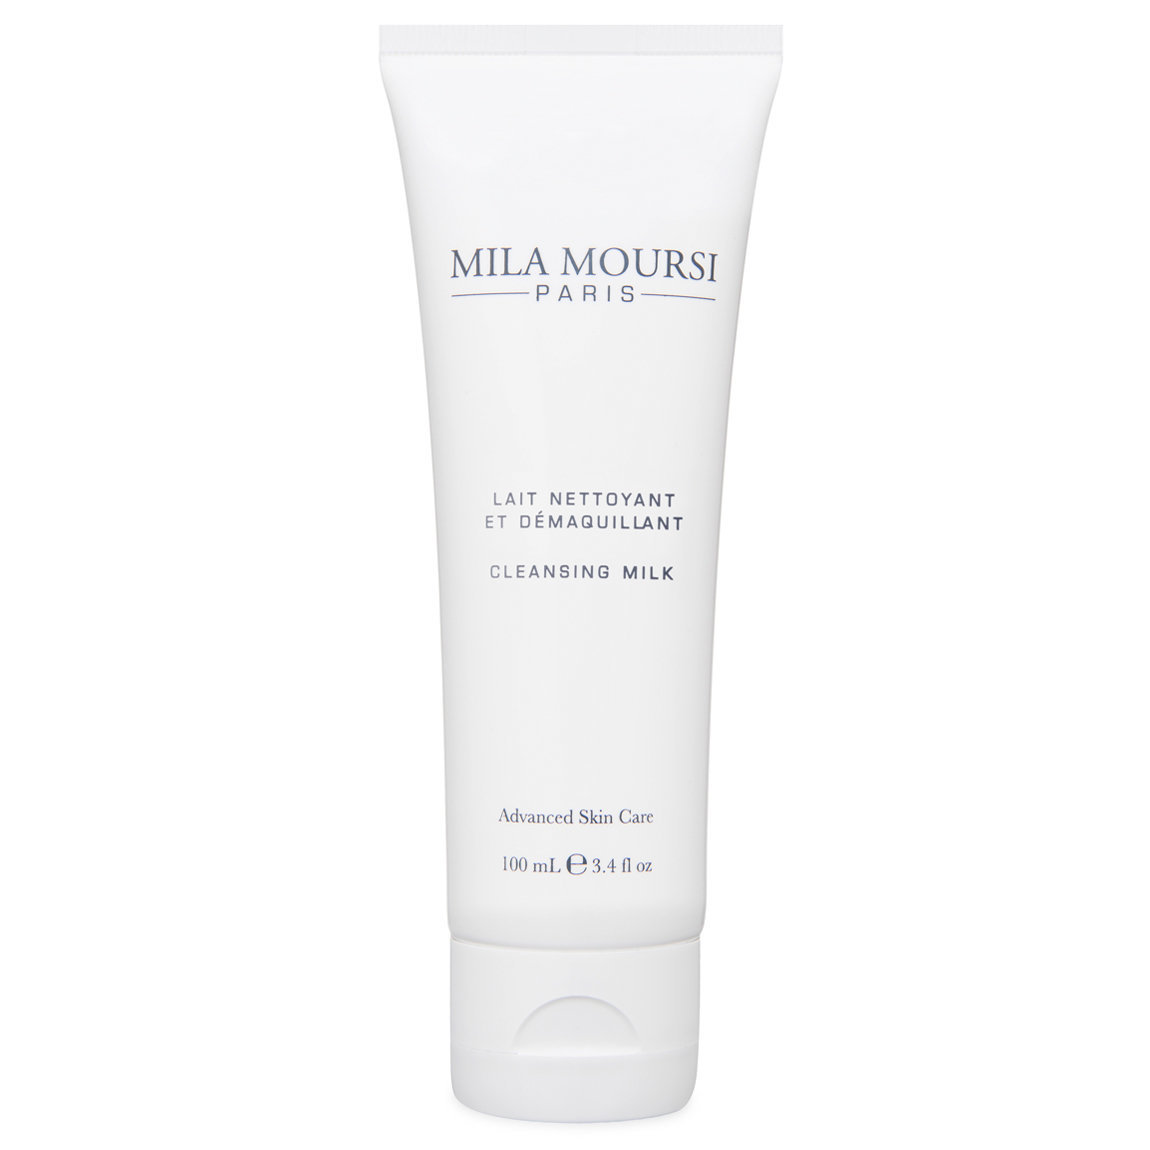 Mila Moursi Cleansing Milk 100 ml alternative view 1 - product swatch.